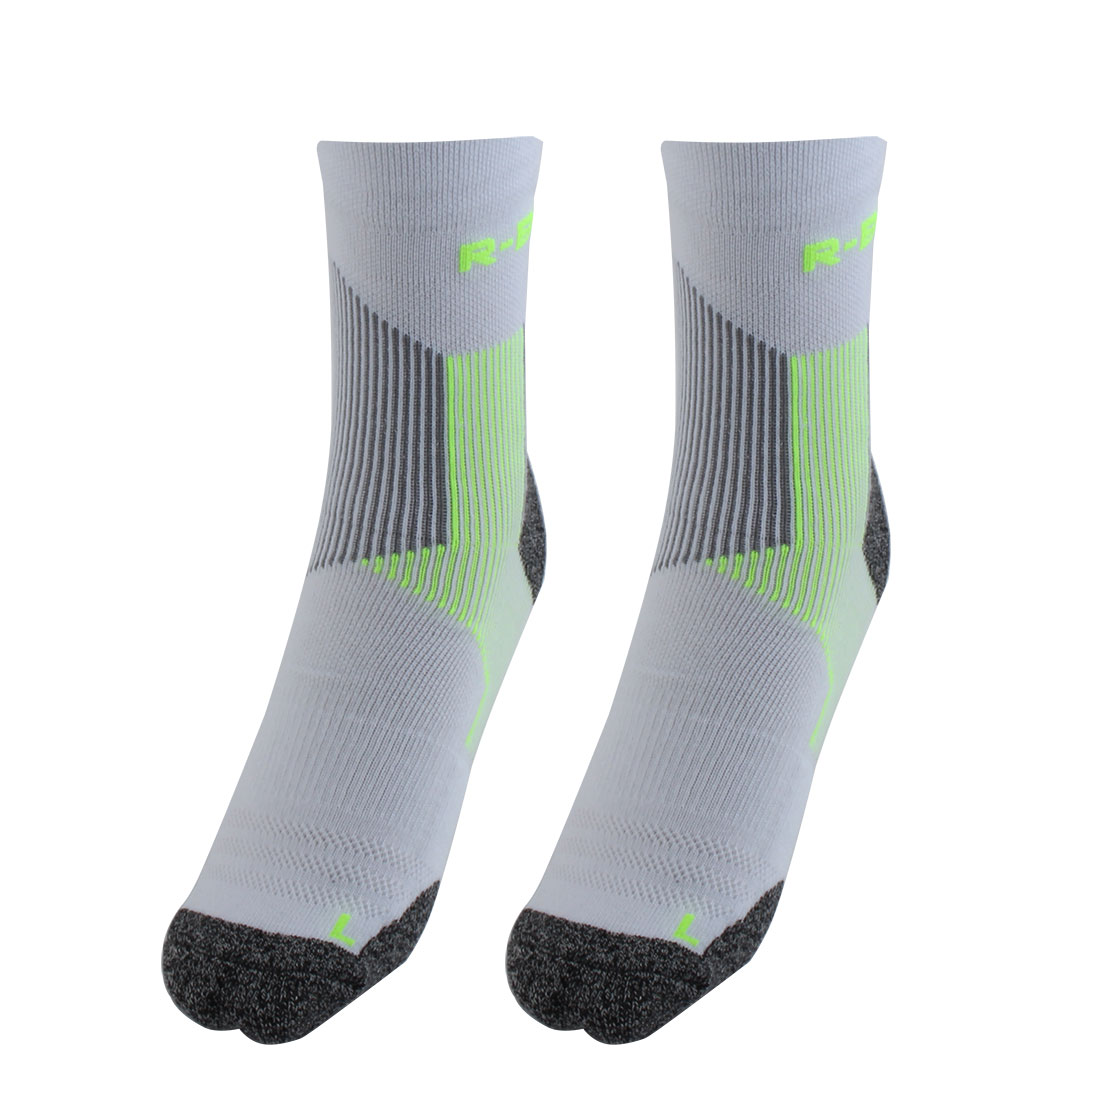 R-BAO Authorized Bicycle Tennis Mountain Bike Cotton Blend Breathable Sports Cycling Socks Fluorescent Green L